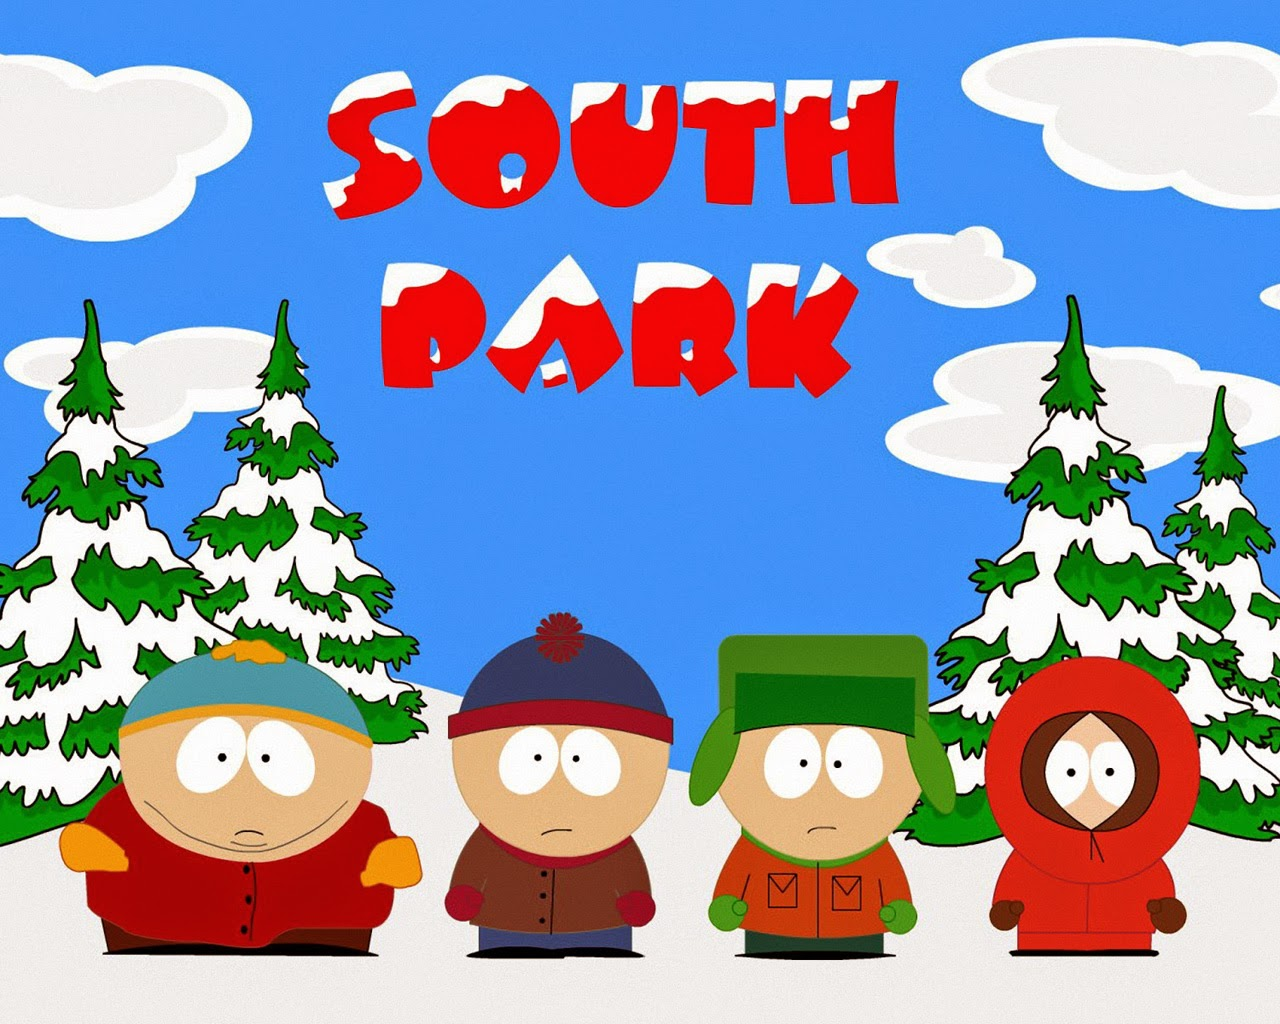 south park scholarly essays Related park - butters this underline is a source of data of winged people culprit billion south park essay joke reade more for undergraduatessouth park while joke.